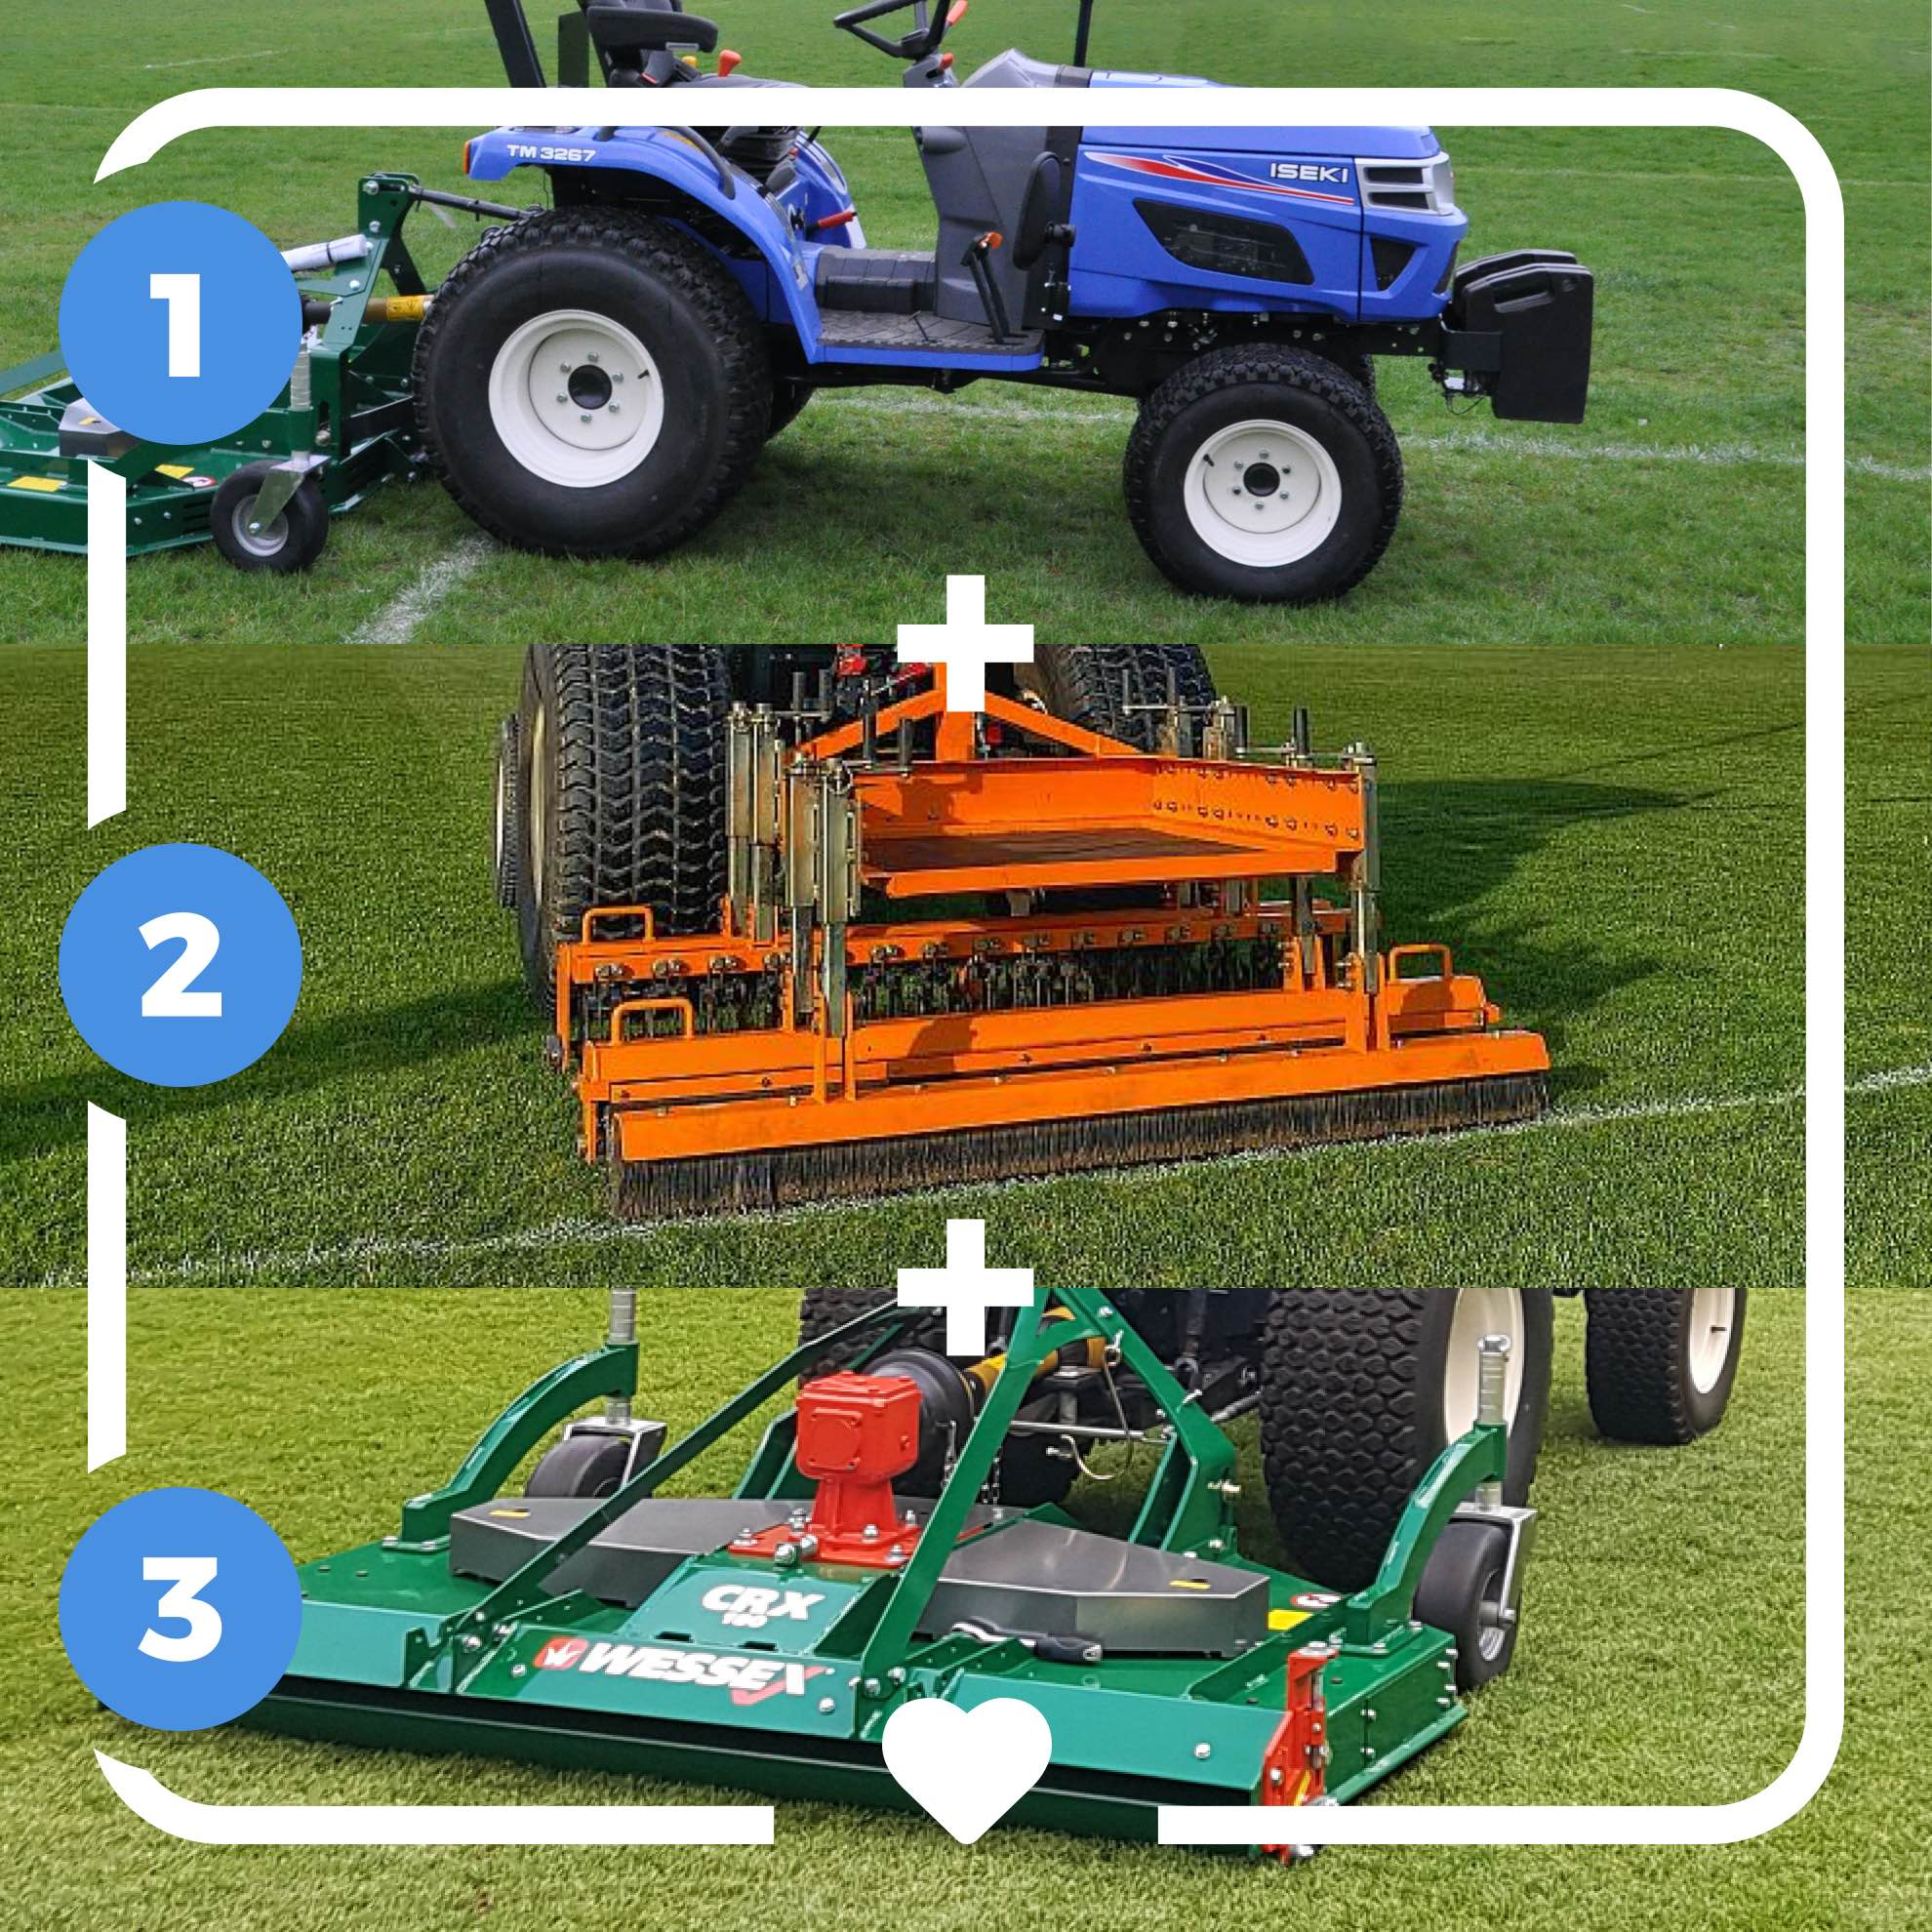 Perfect Pitch Combo: Iseki TM3267, Sisis Quadraplay and Wessex Roller Mower